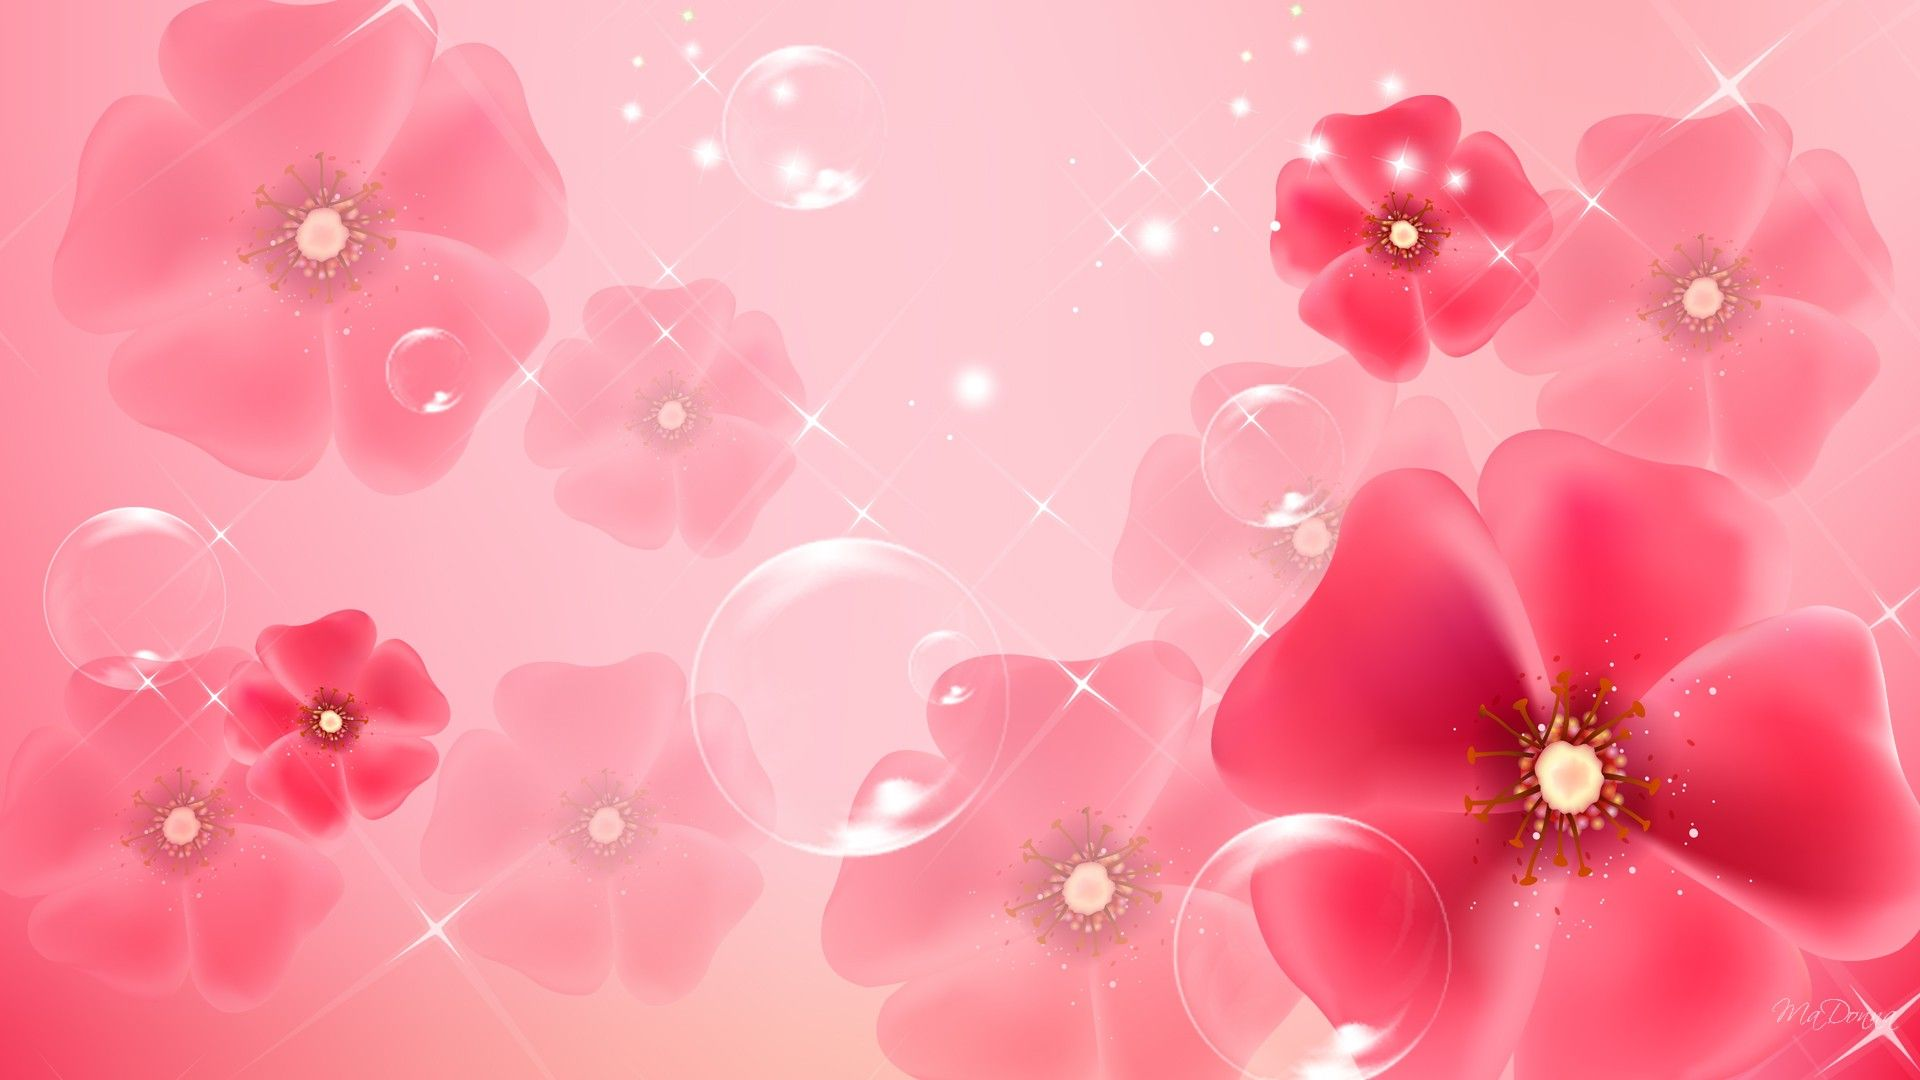 Free Download Light Pink Flower Wallpapers 1920x1080 For Your